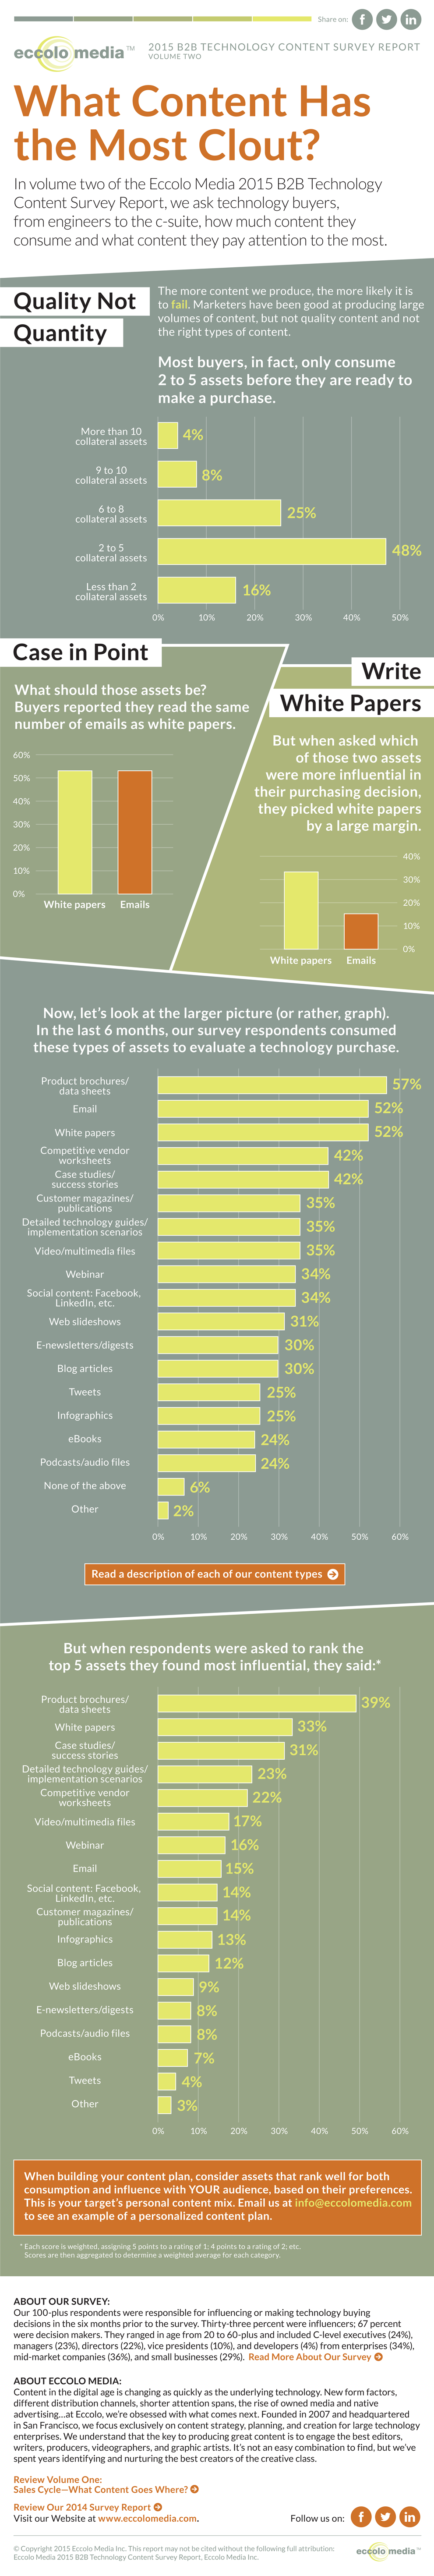 Eccolo Media B2B Technology Content Survey Report Infographic